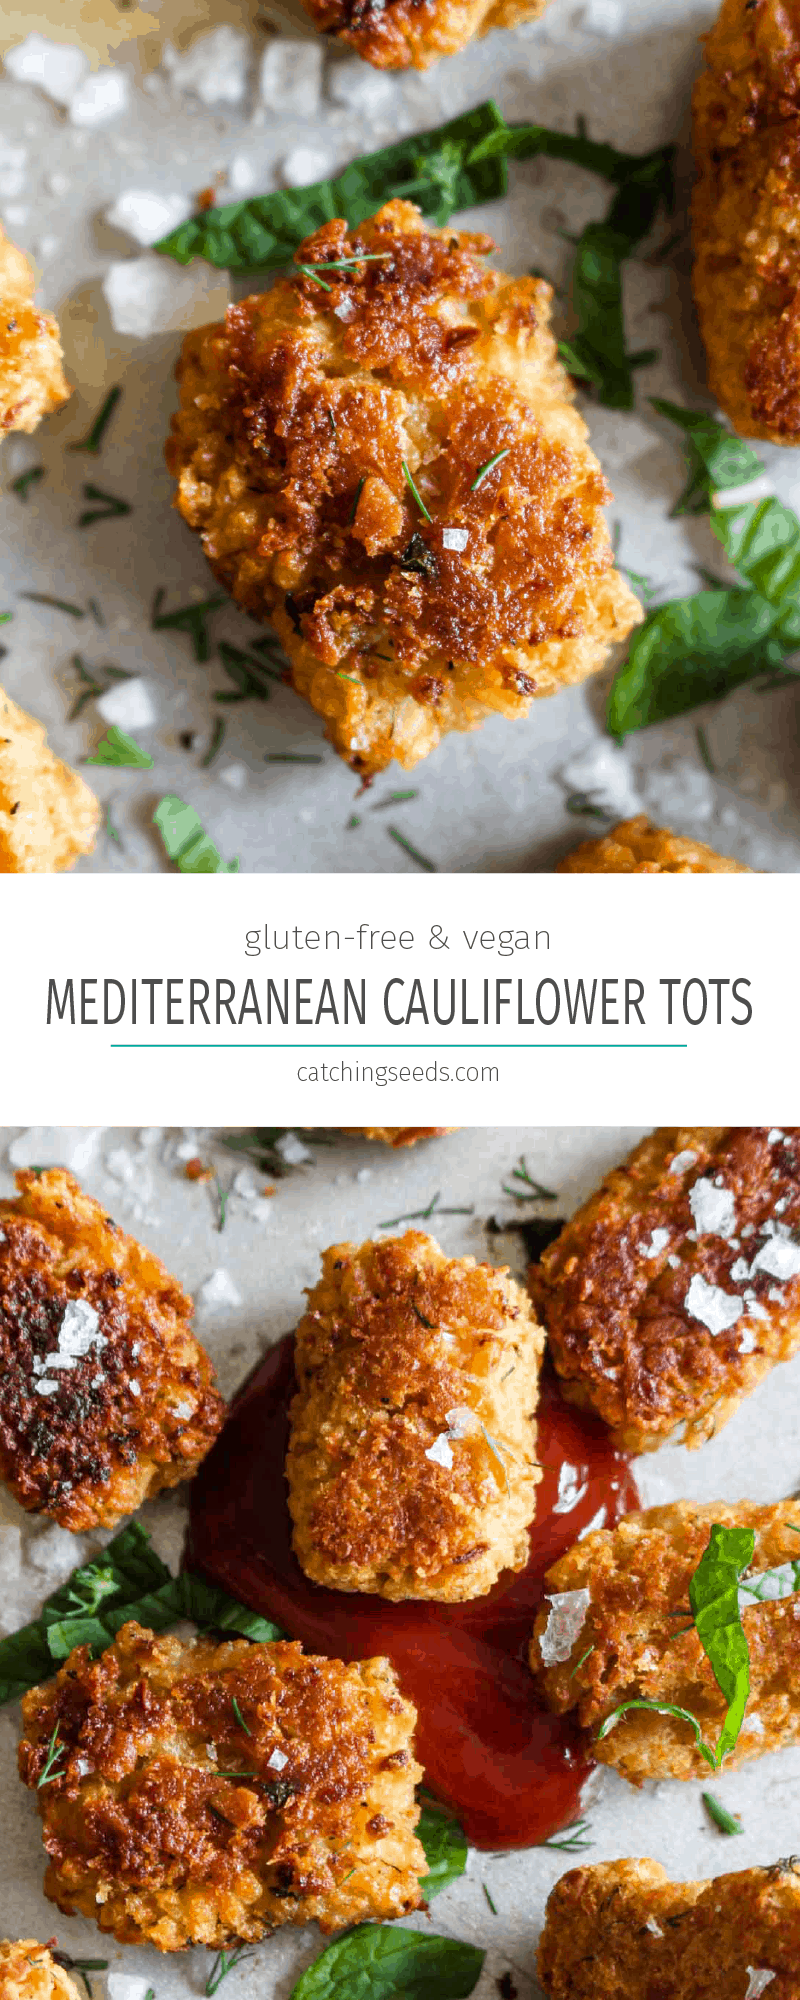 Mediterranean Chickpea Cauliflower Tots are a fun and healthy spin on traditional tots! This side dish gets golden brown and crispy on the outside and is melt in your mouth on the inside. Plus, this recipe sneaks in some extra veggies, is gluten free, and vegan! | CatchingSeeds.com